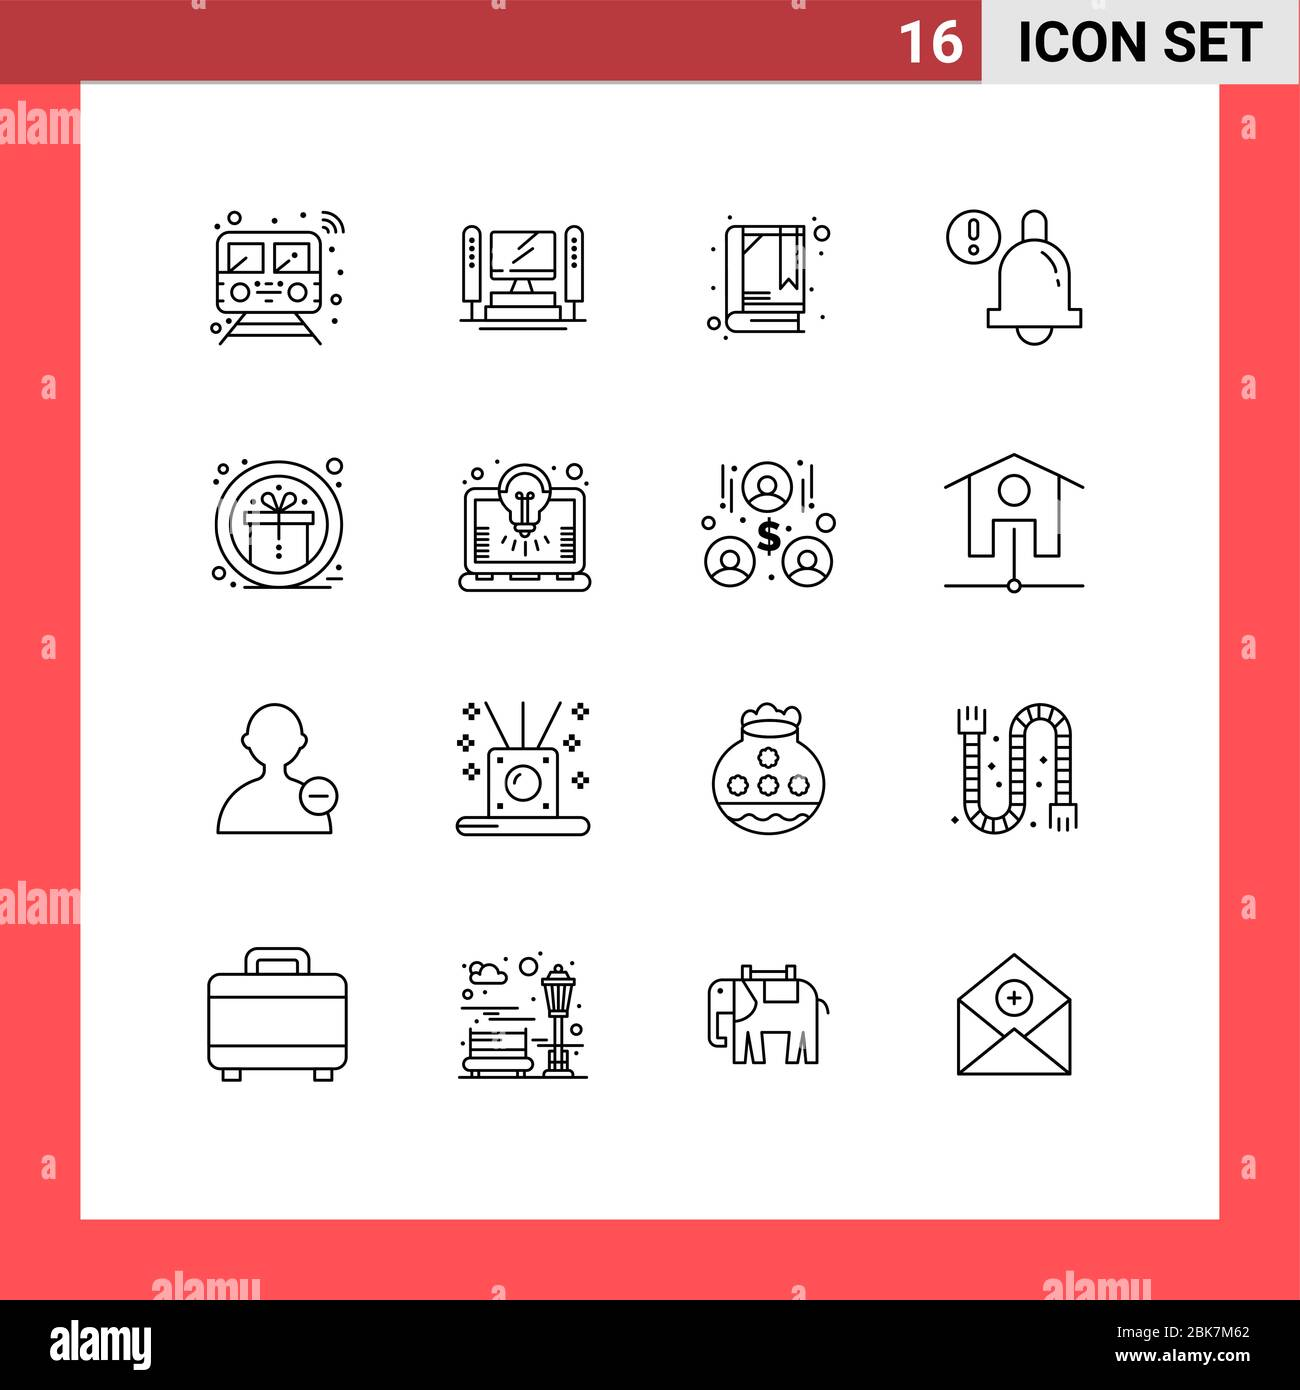 User Interface Pack of 16 Basic Outlines of prize, award, cpu, bell, alarm Editable Vector Design Elements Stock Vector